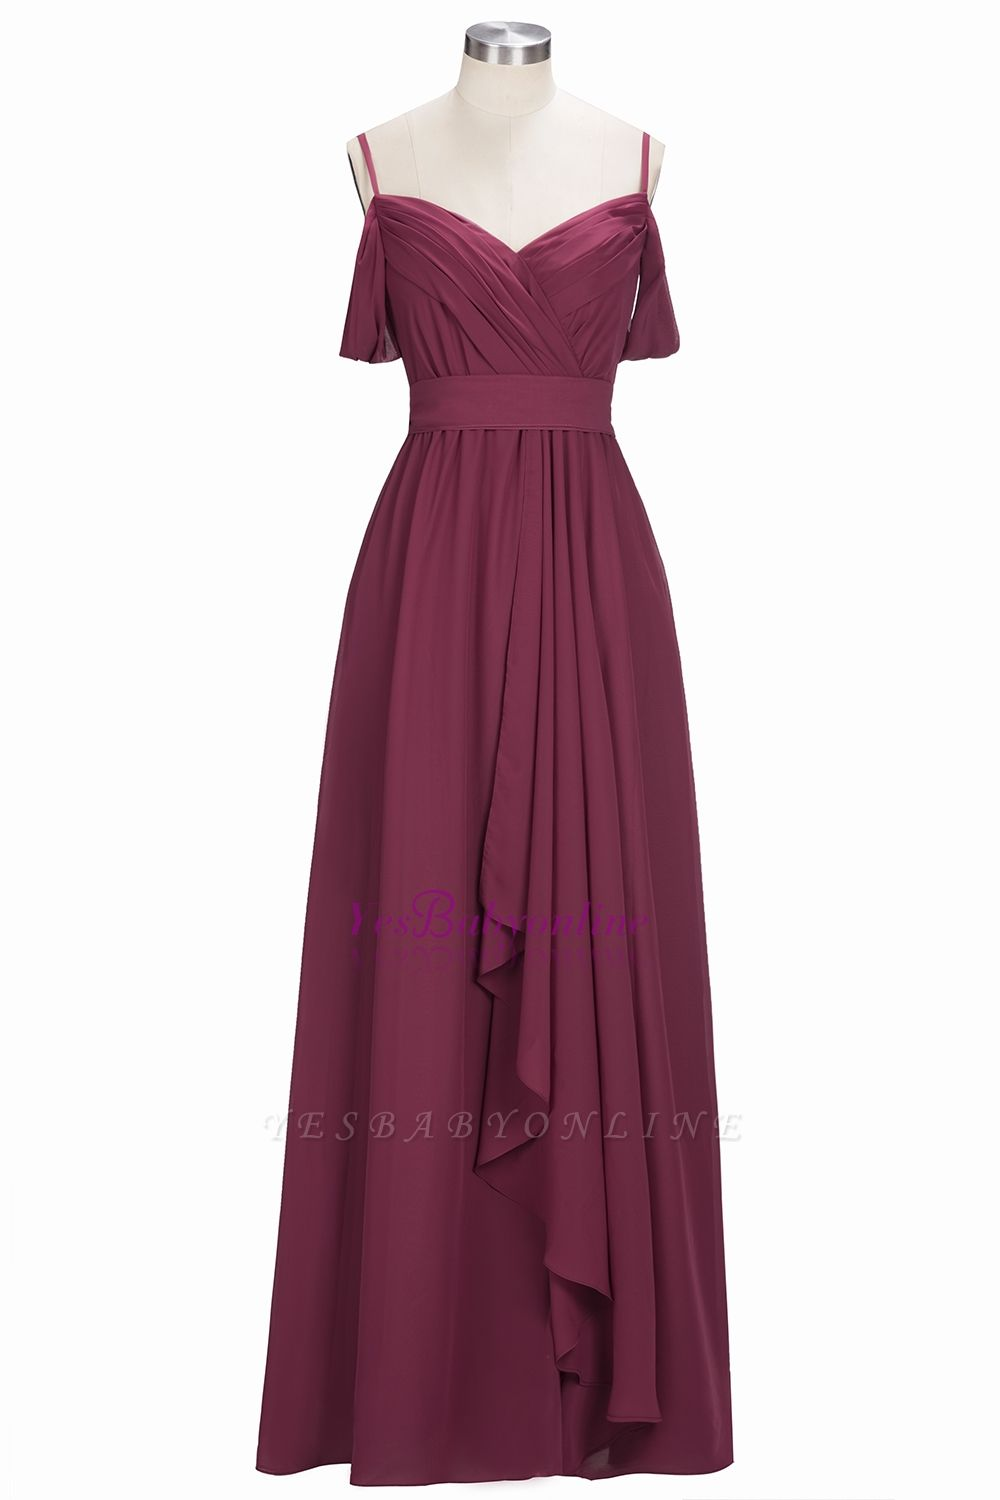 Chiffon Burgundy Bridesmaid Dresses,Spaghettis Straps Long Bridesmaid Dress